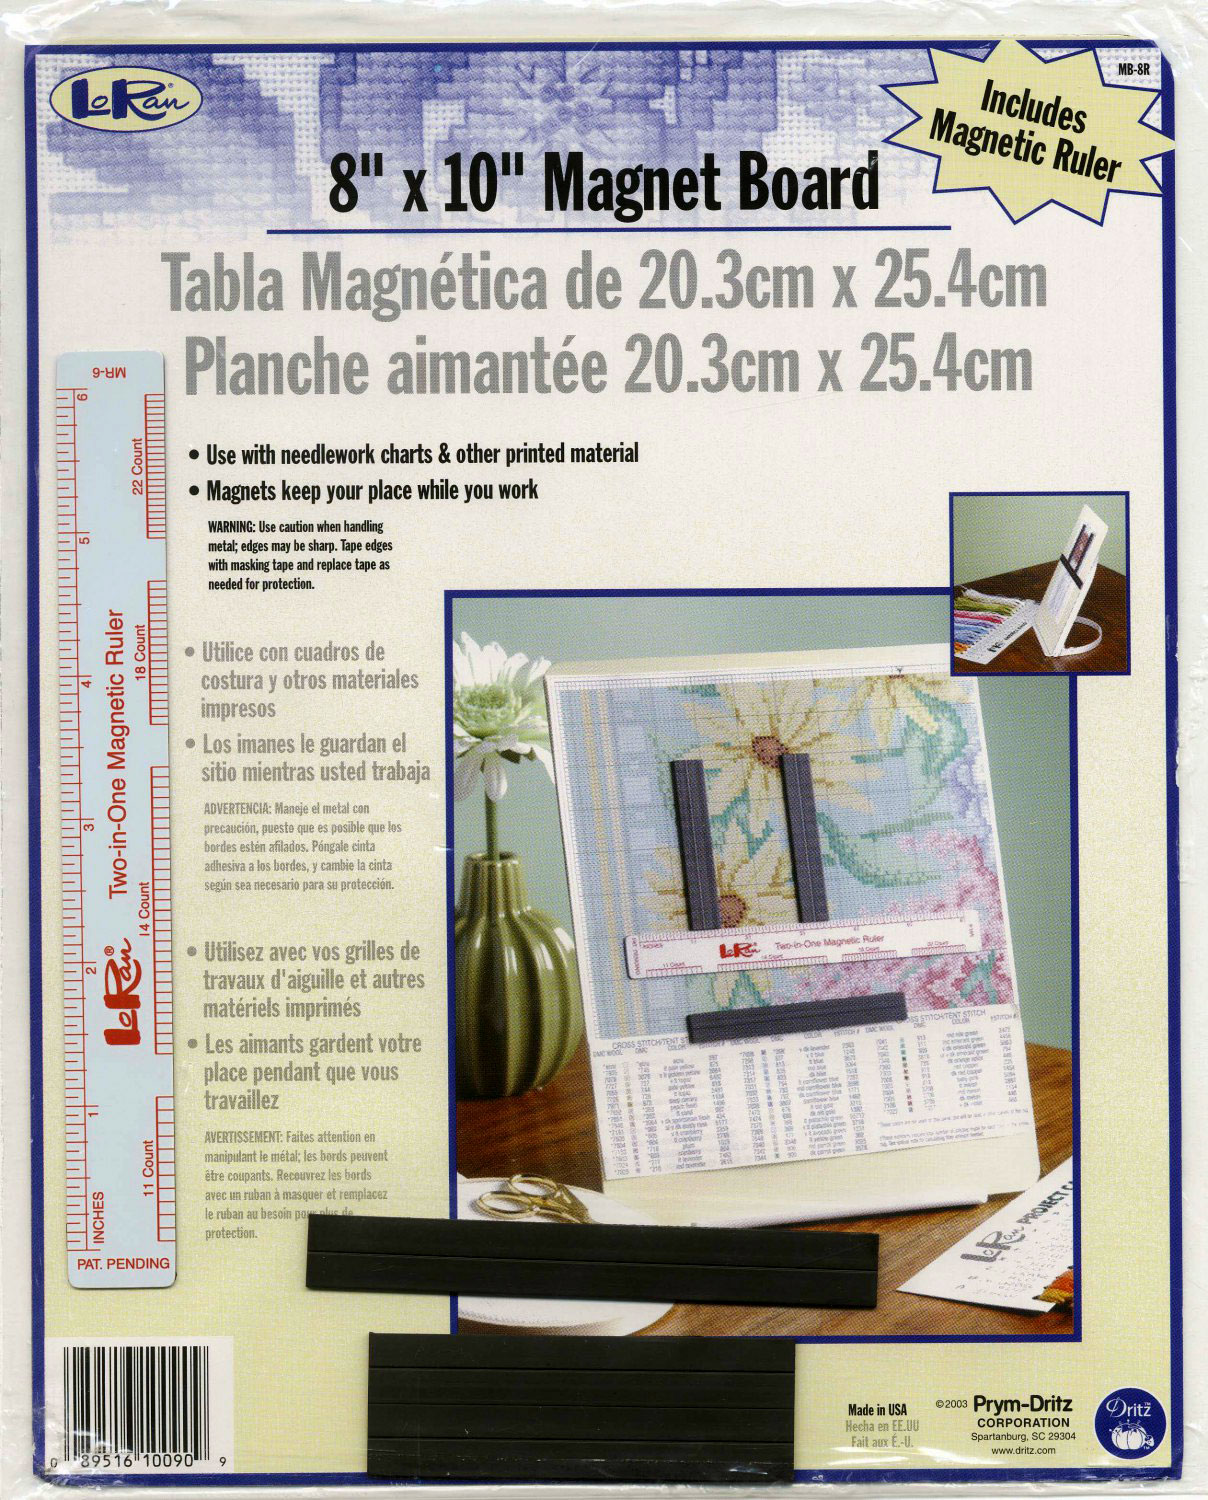 Magnet Board 8 x 10 With Ruler - 089516100909